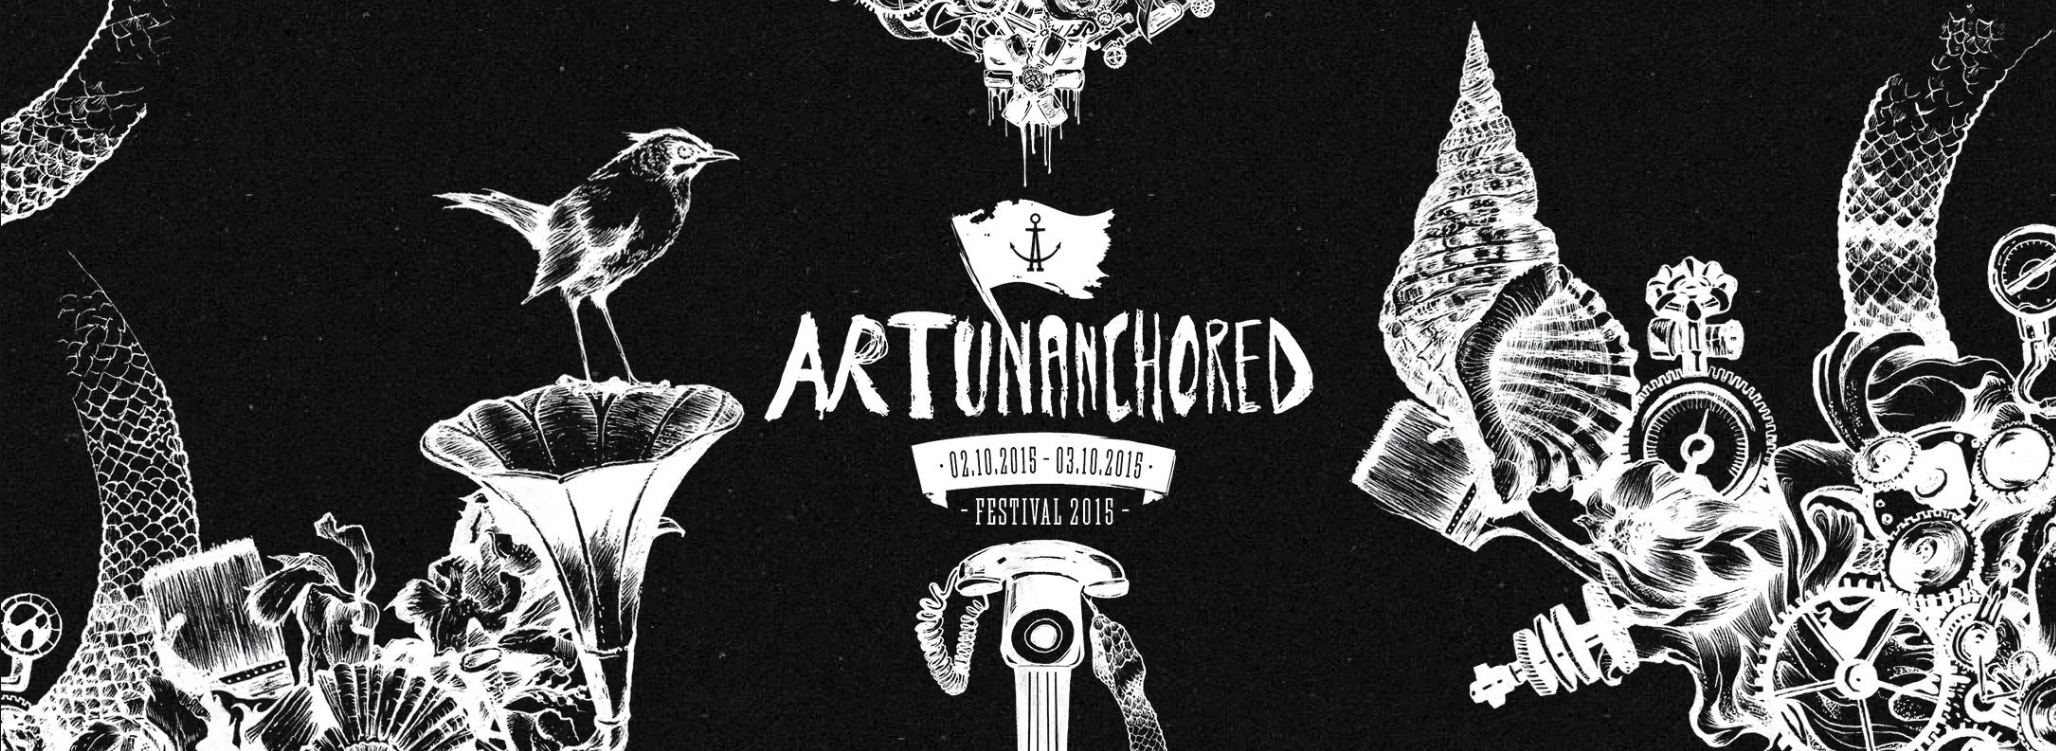 Art Un-Anchored-banner